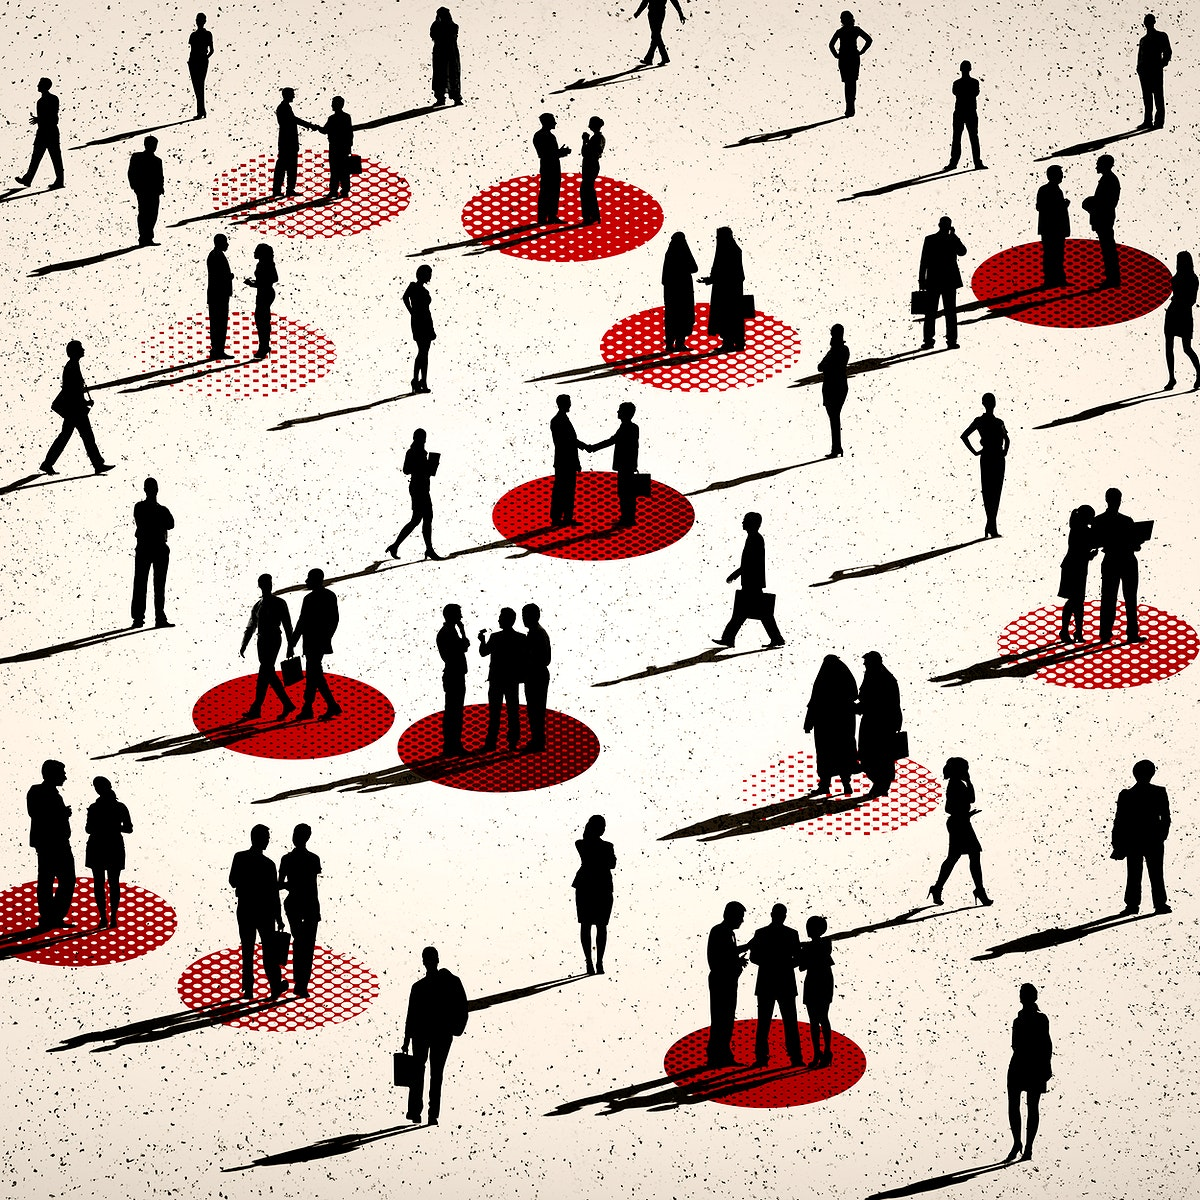 People social distancing in public illustration